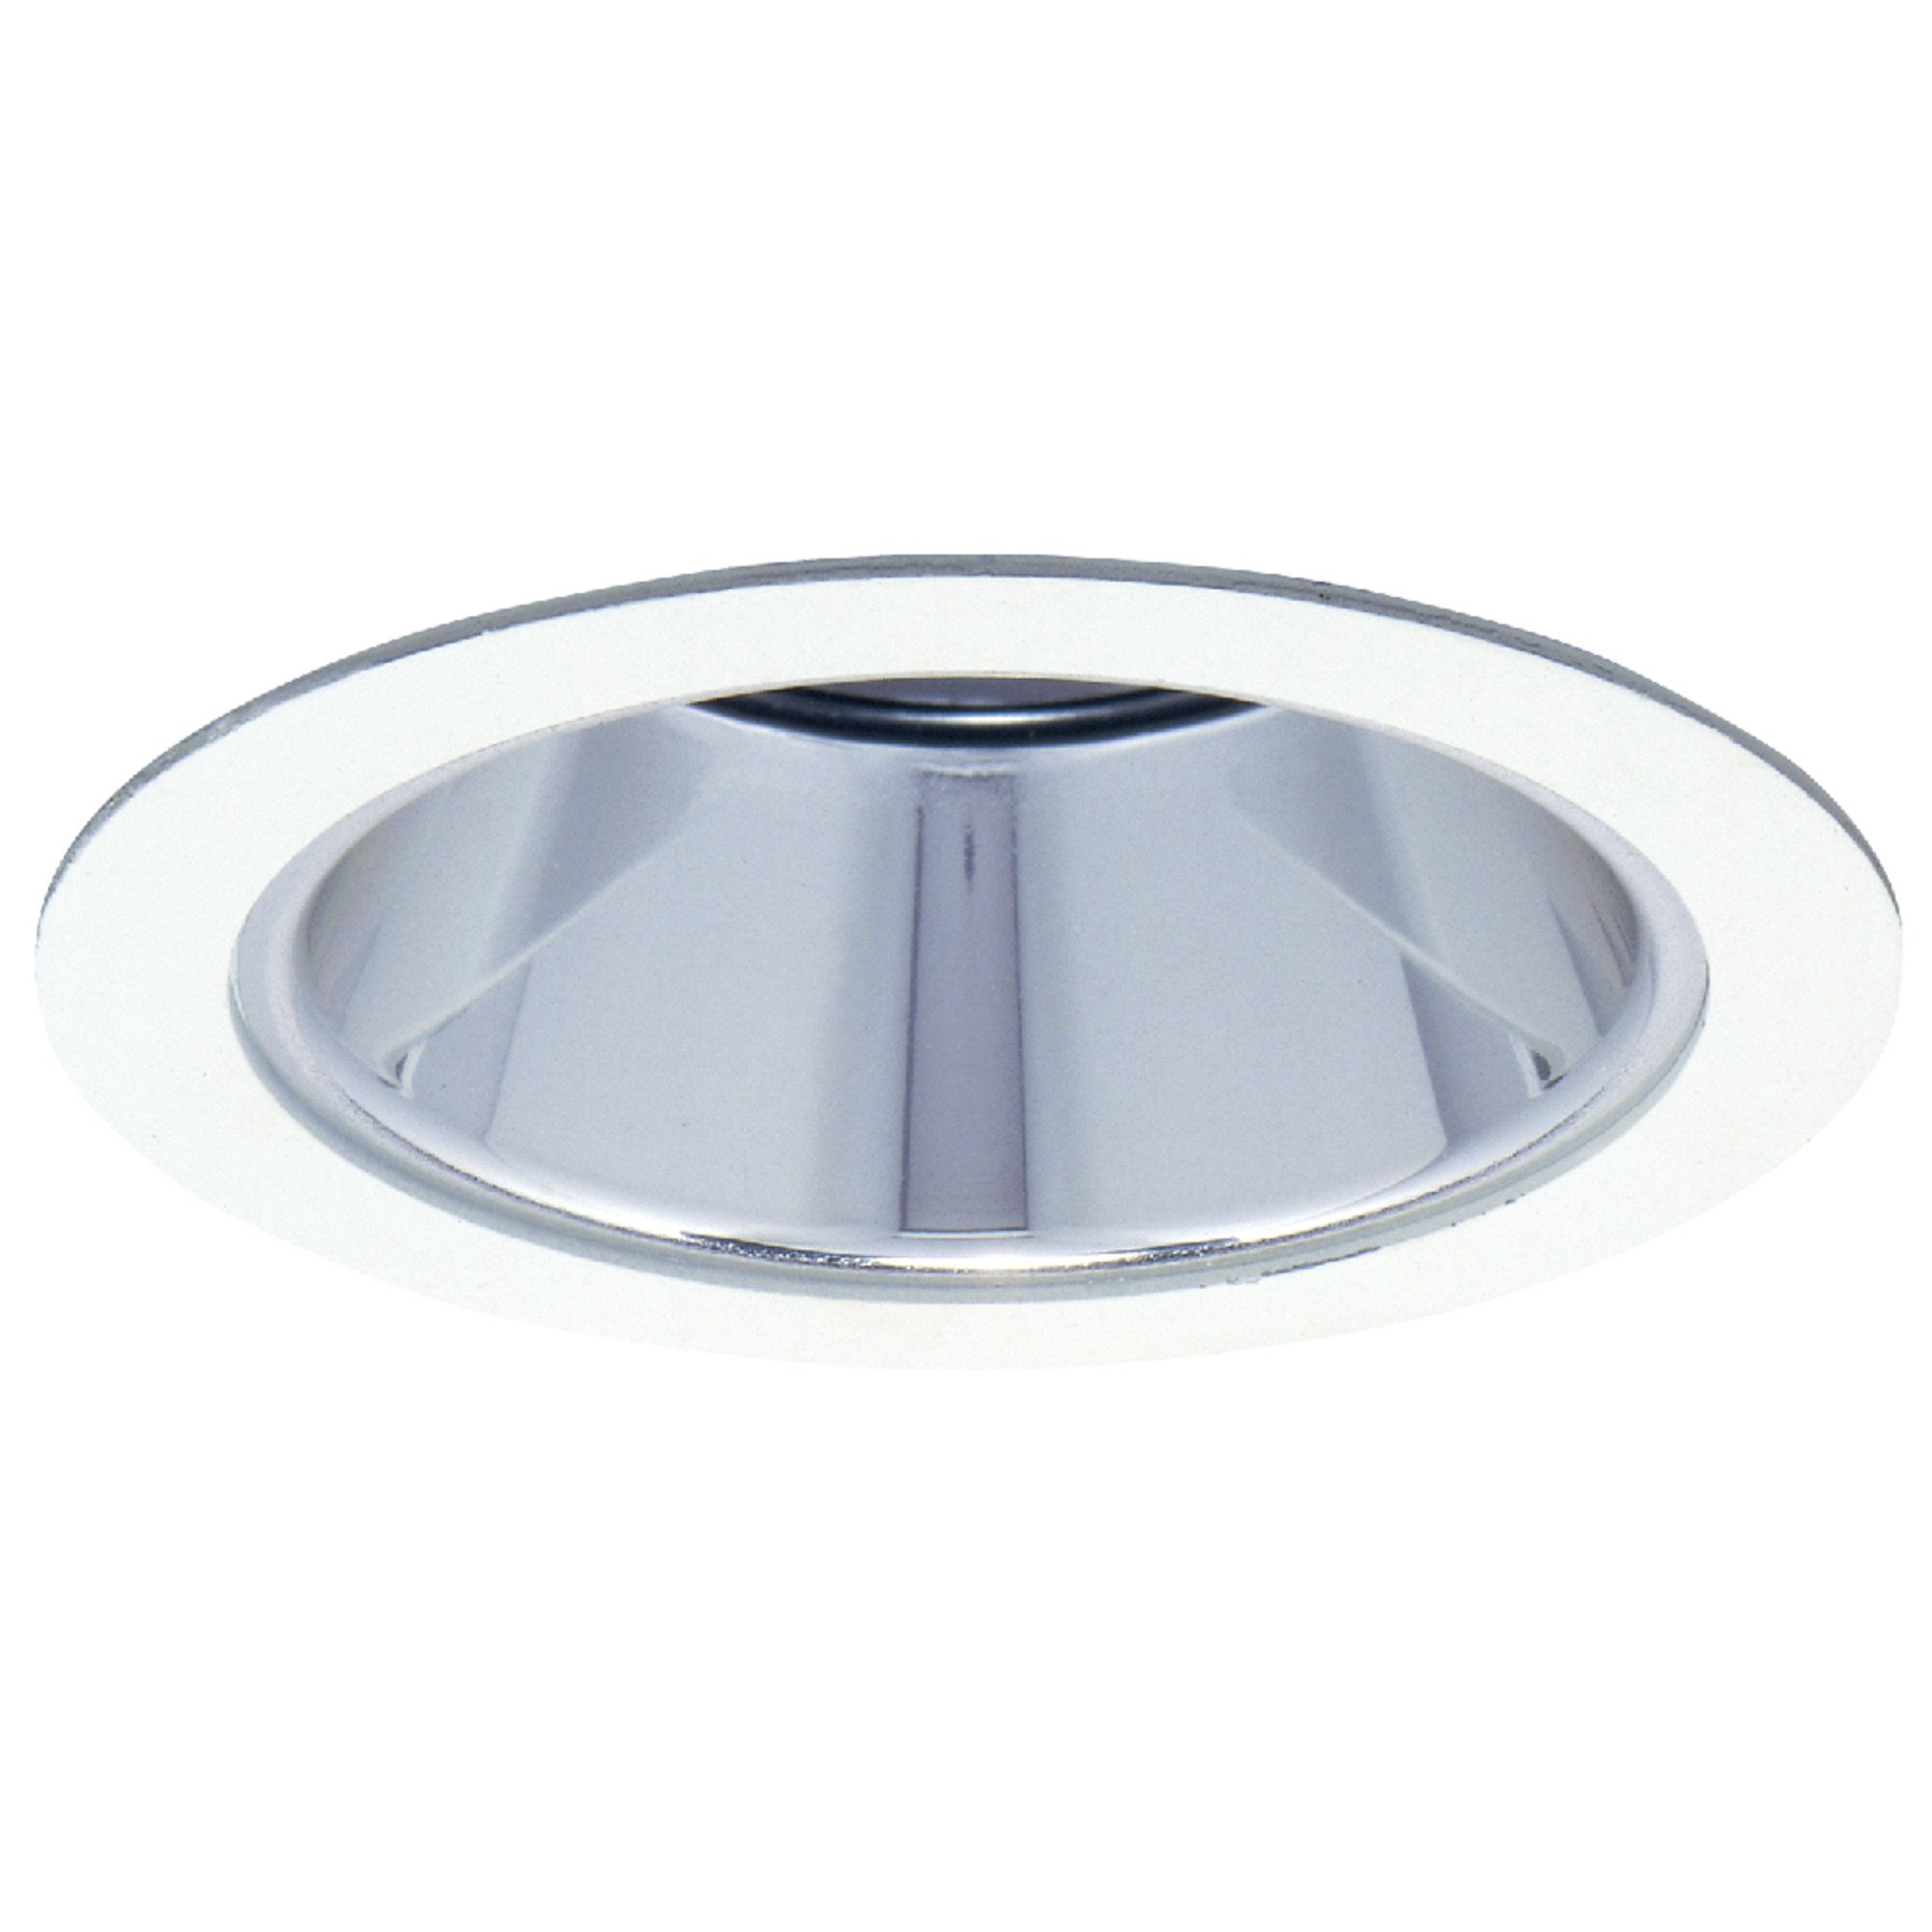 Halo Recessed 1421W 4-Inch Trim with Reflector, White